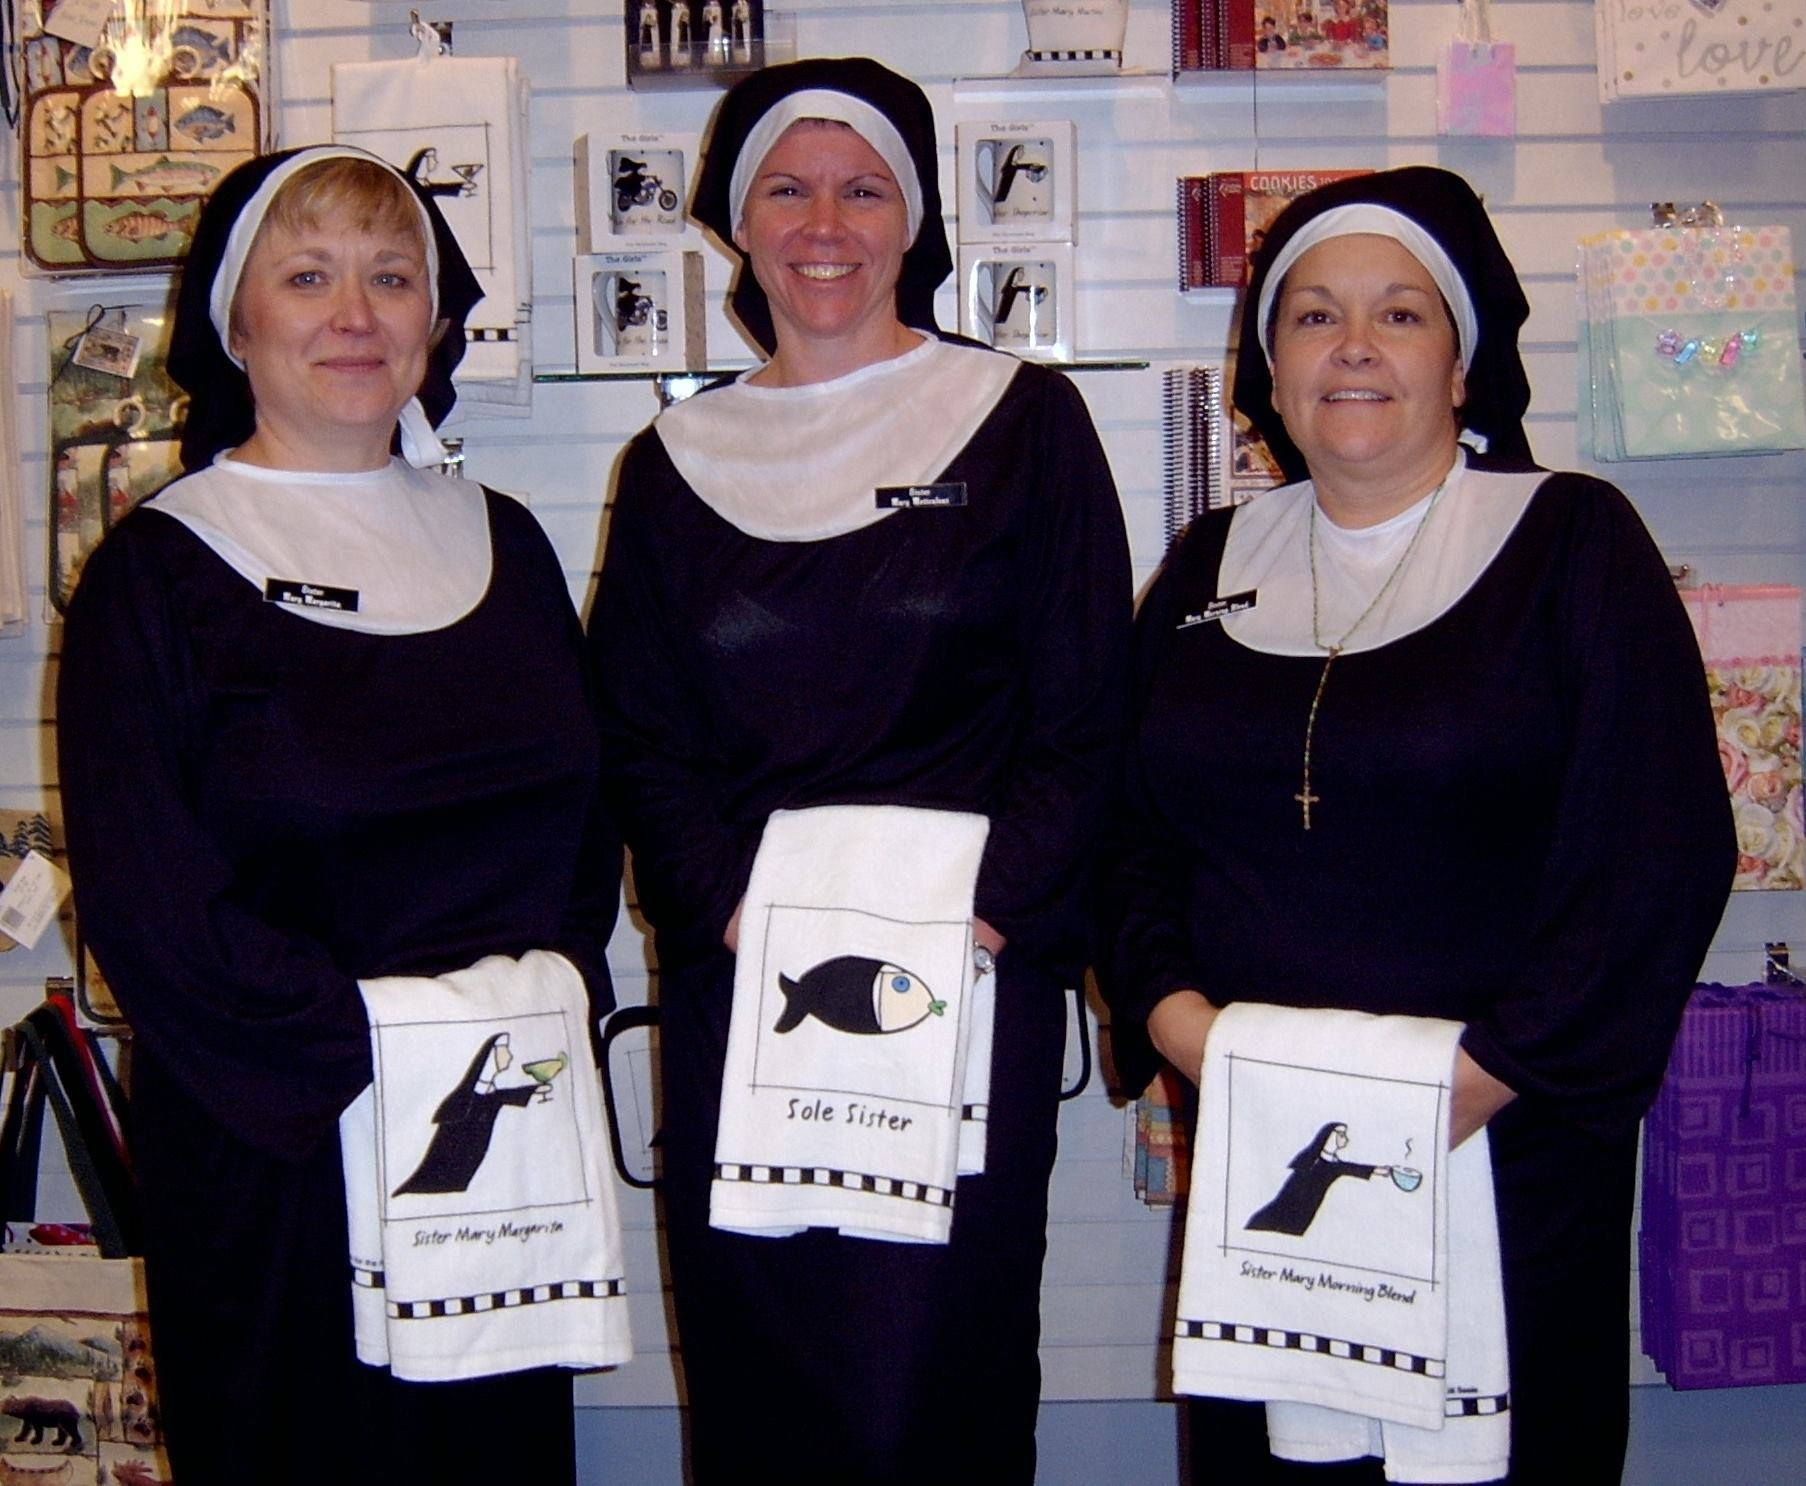 Back in the holy days meet Sole Sister, Sister Mary margarita and Sister Mary Morning Blend. Join us on our facebook page for more great costumes.